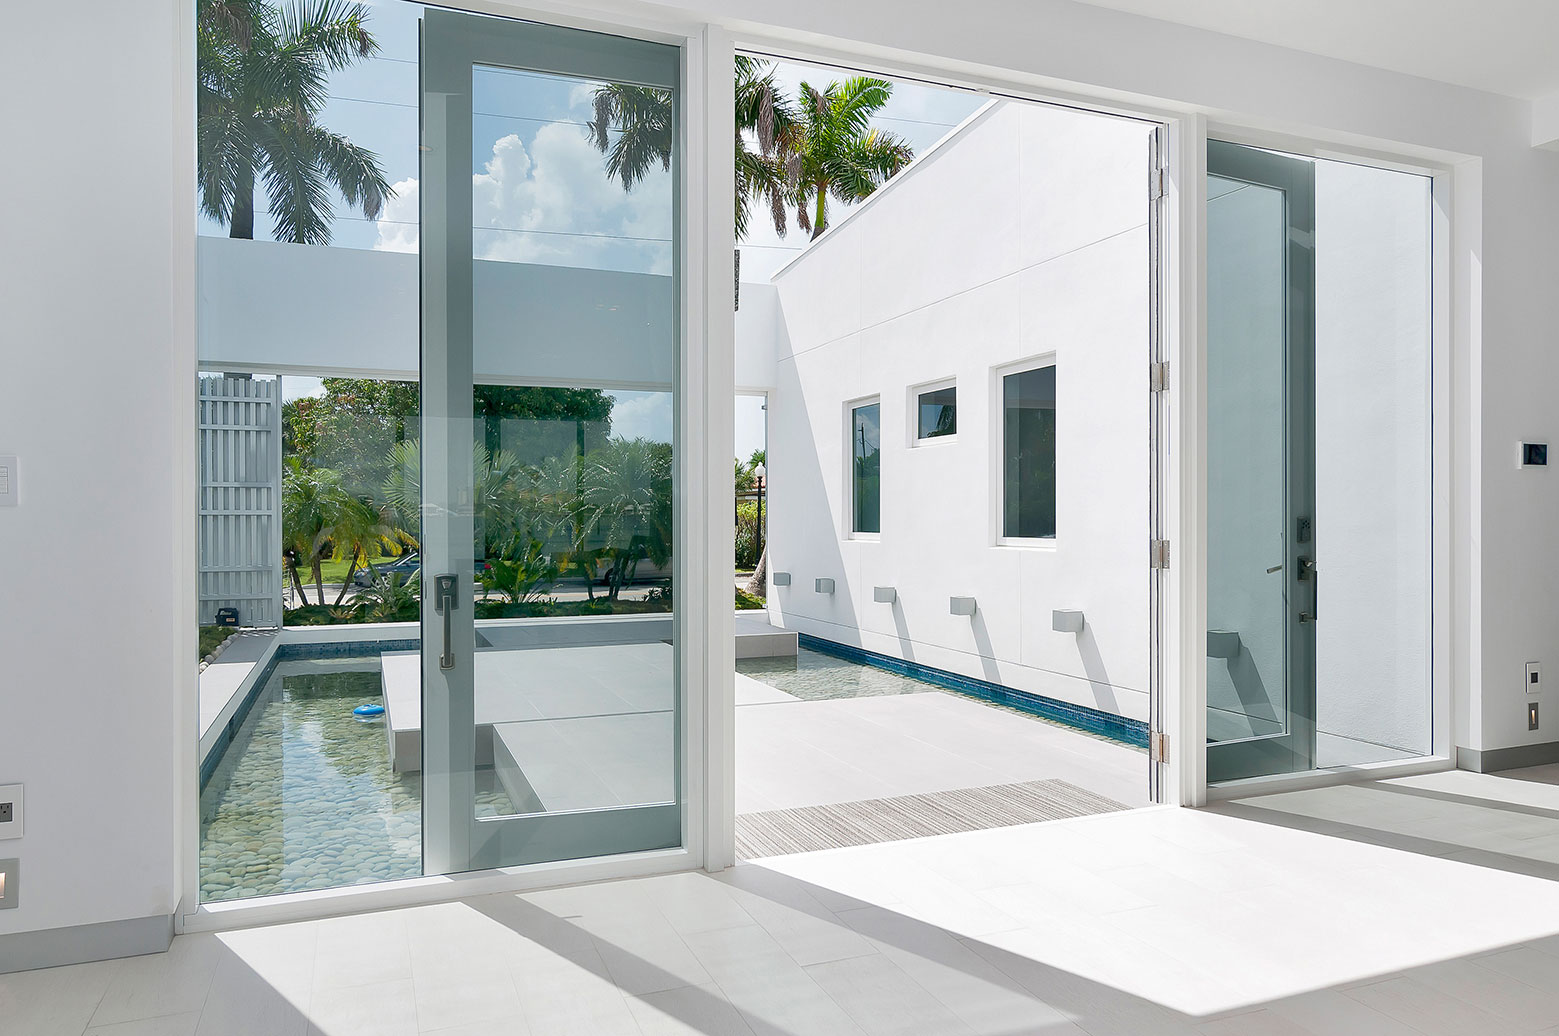 Gross-Flasz House is The Modernist Pavilion in an Extreme Maritime Context by One d+b Miami-13